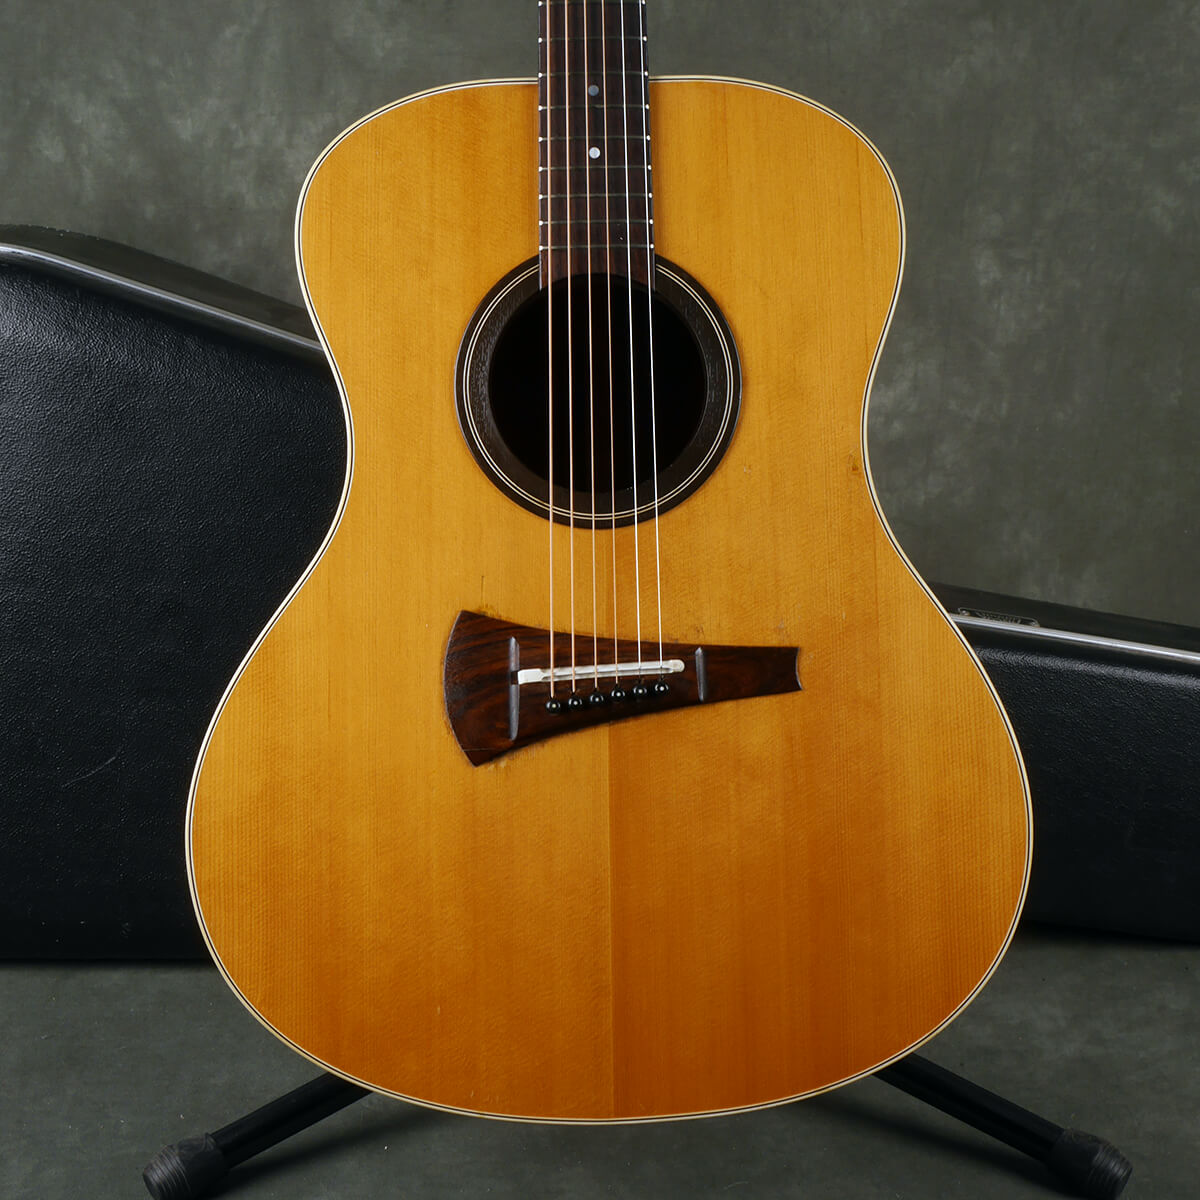 Gibson 1976 MK-35 Acoustic Guitar - Natural w/Hard Case - 2nd Hand